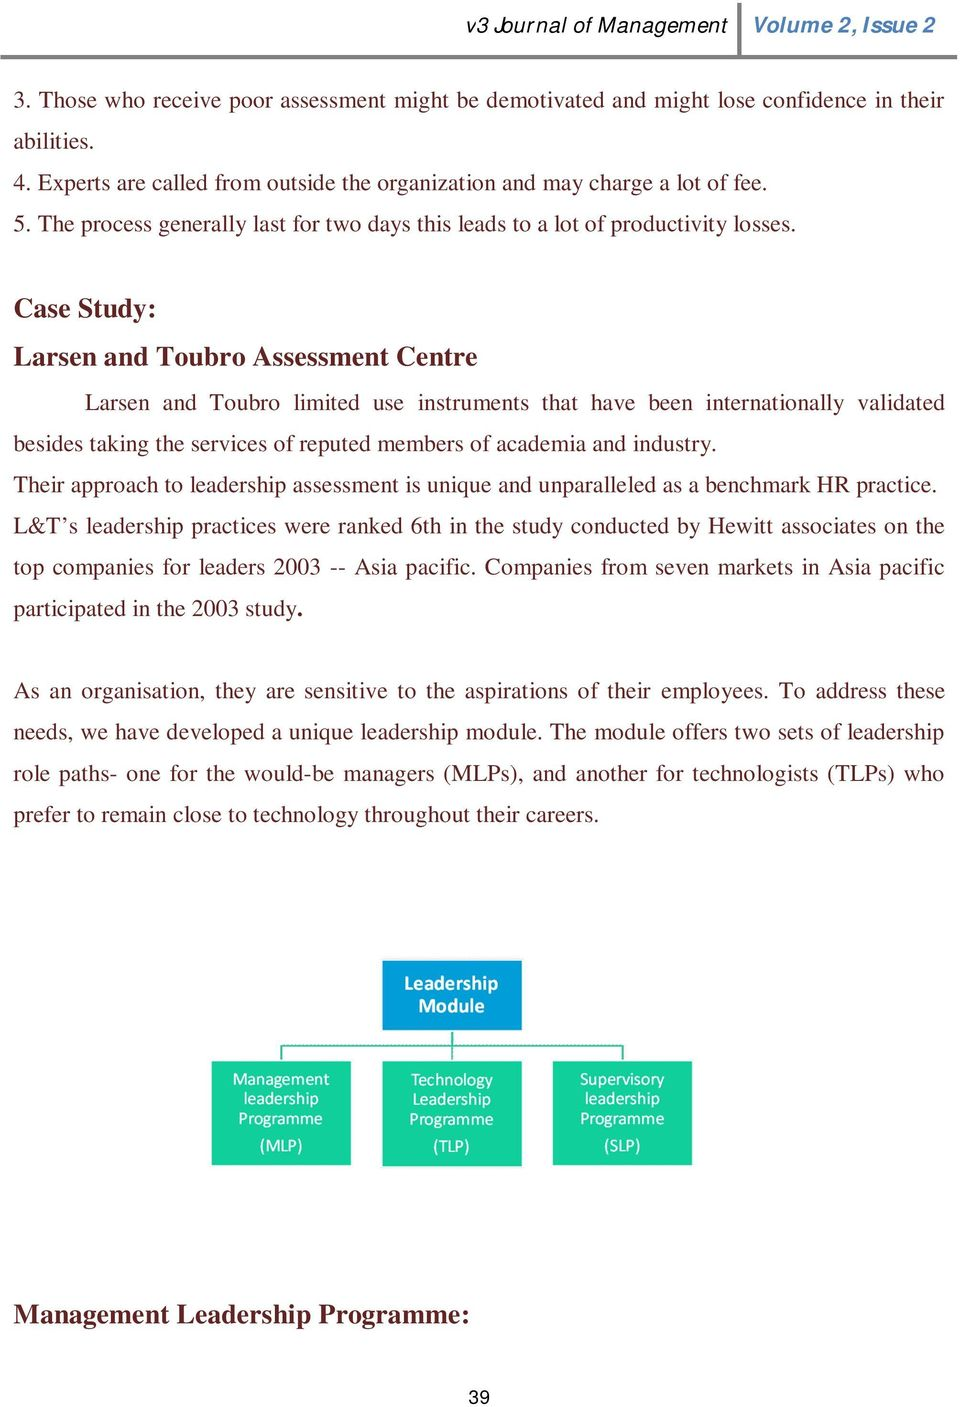 Case Study: Larsen and Toubro Assessment Centre Larsen and Toubro limited use instruments that have been internationally validated besides taking the services of reputed members of academia and